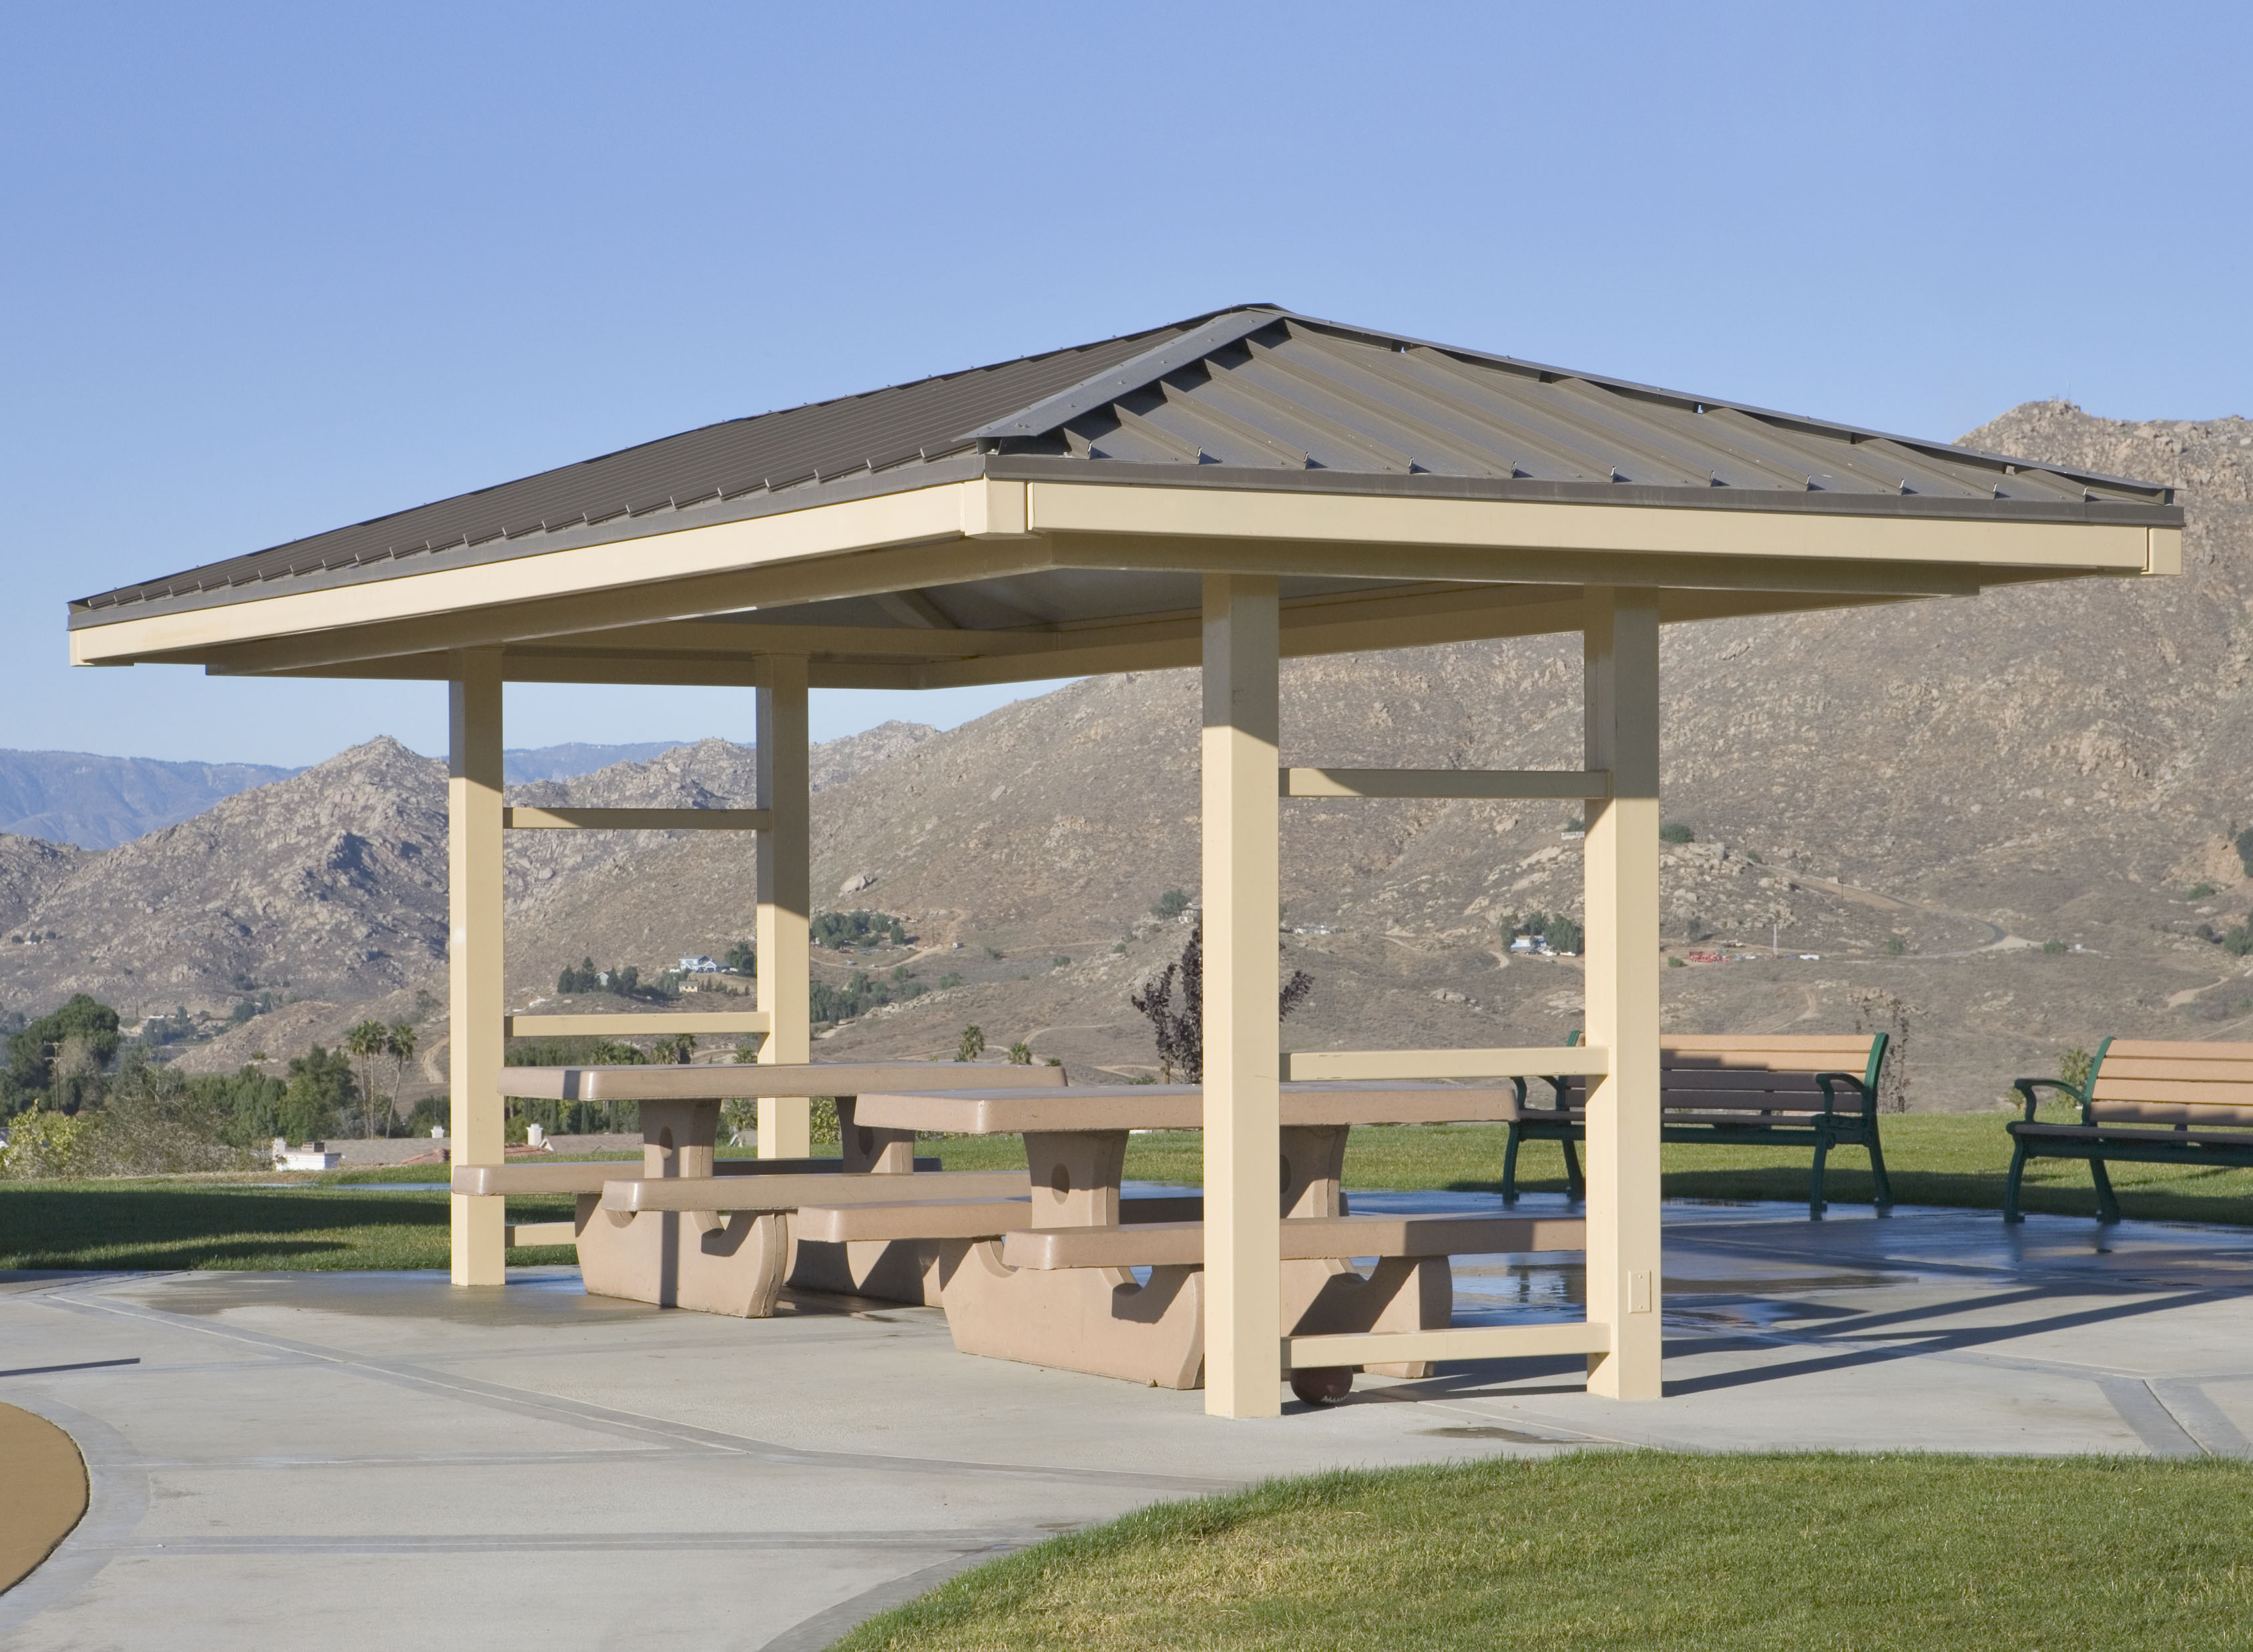 Mingus shade shelter